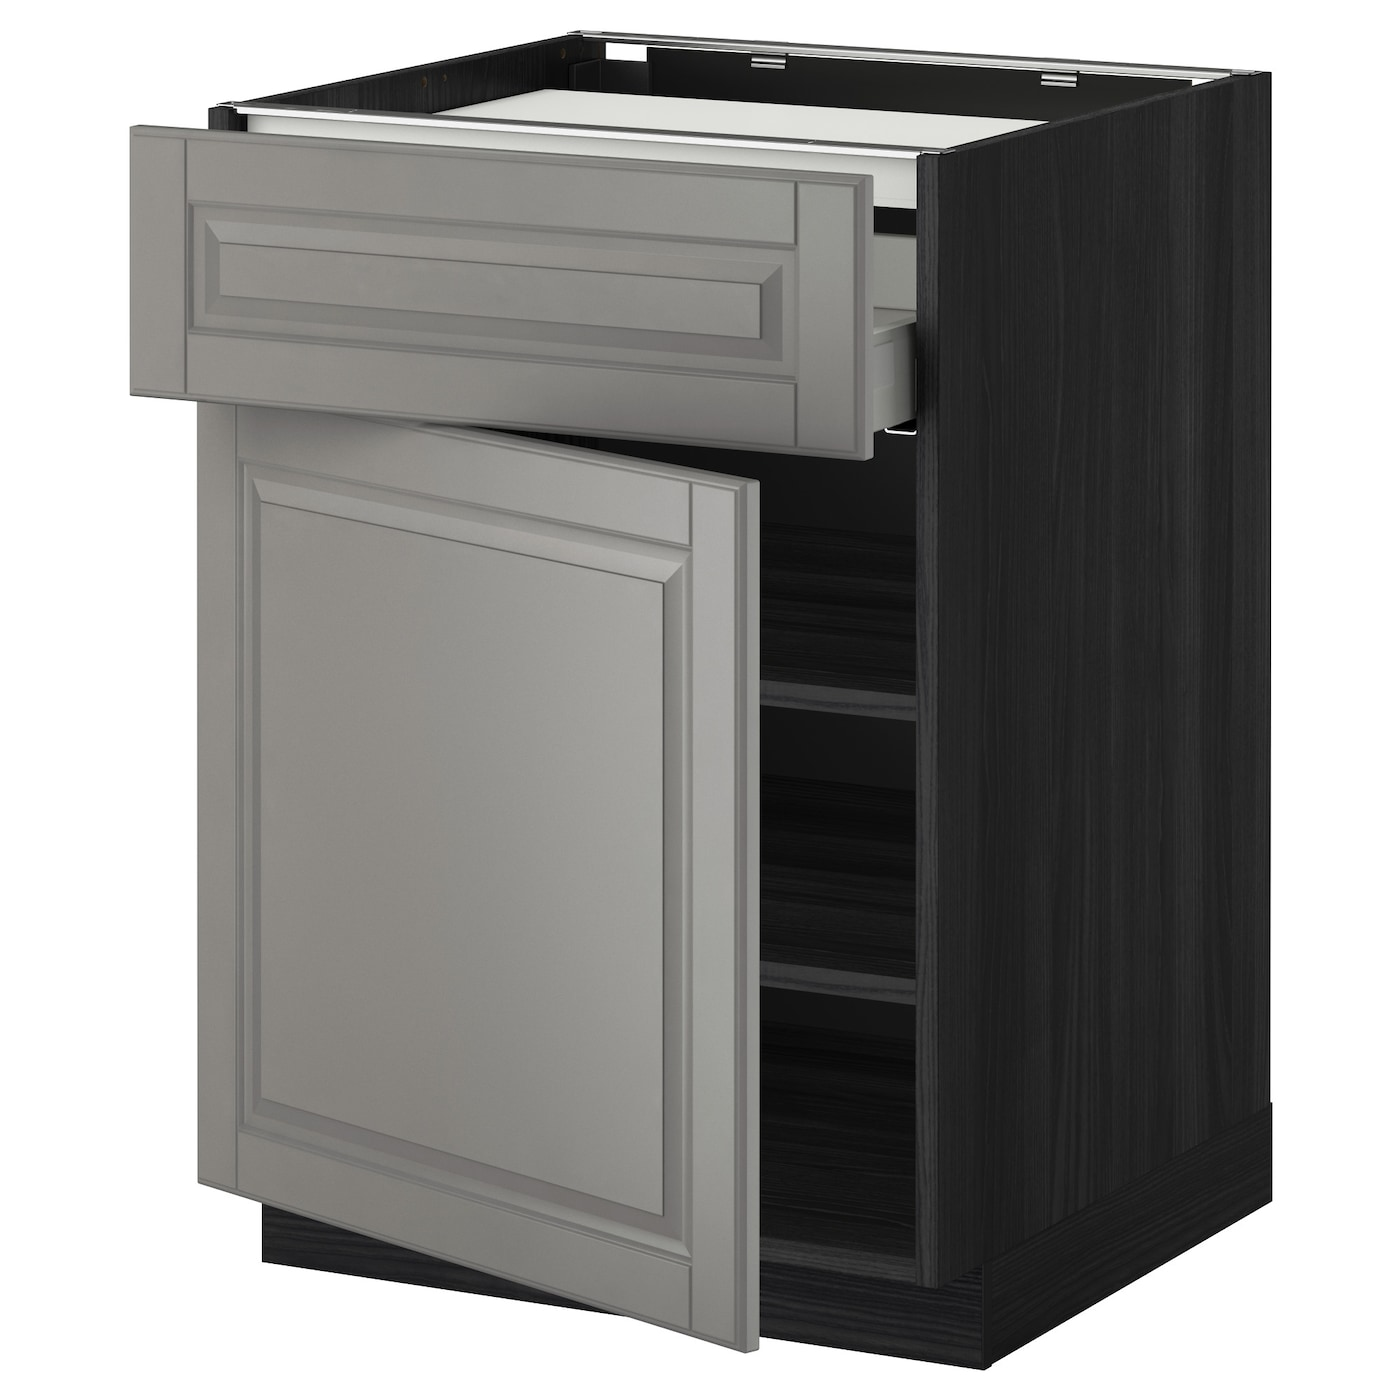 IKEA METOD/MAXIMERA base cab f hob/drawer/shelves/door Smooth-running drawers with stop.